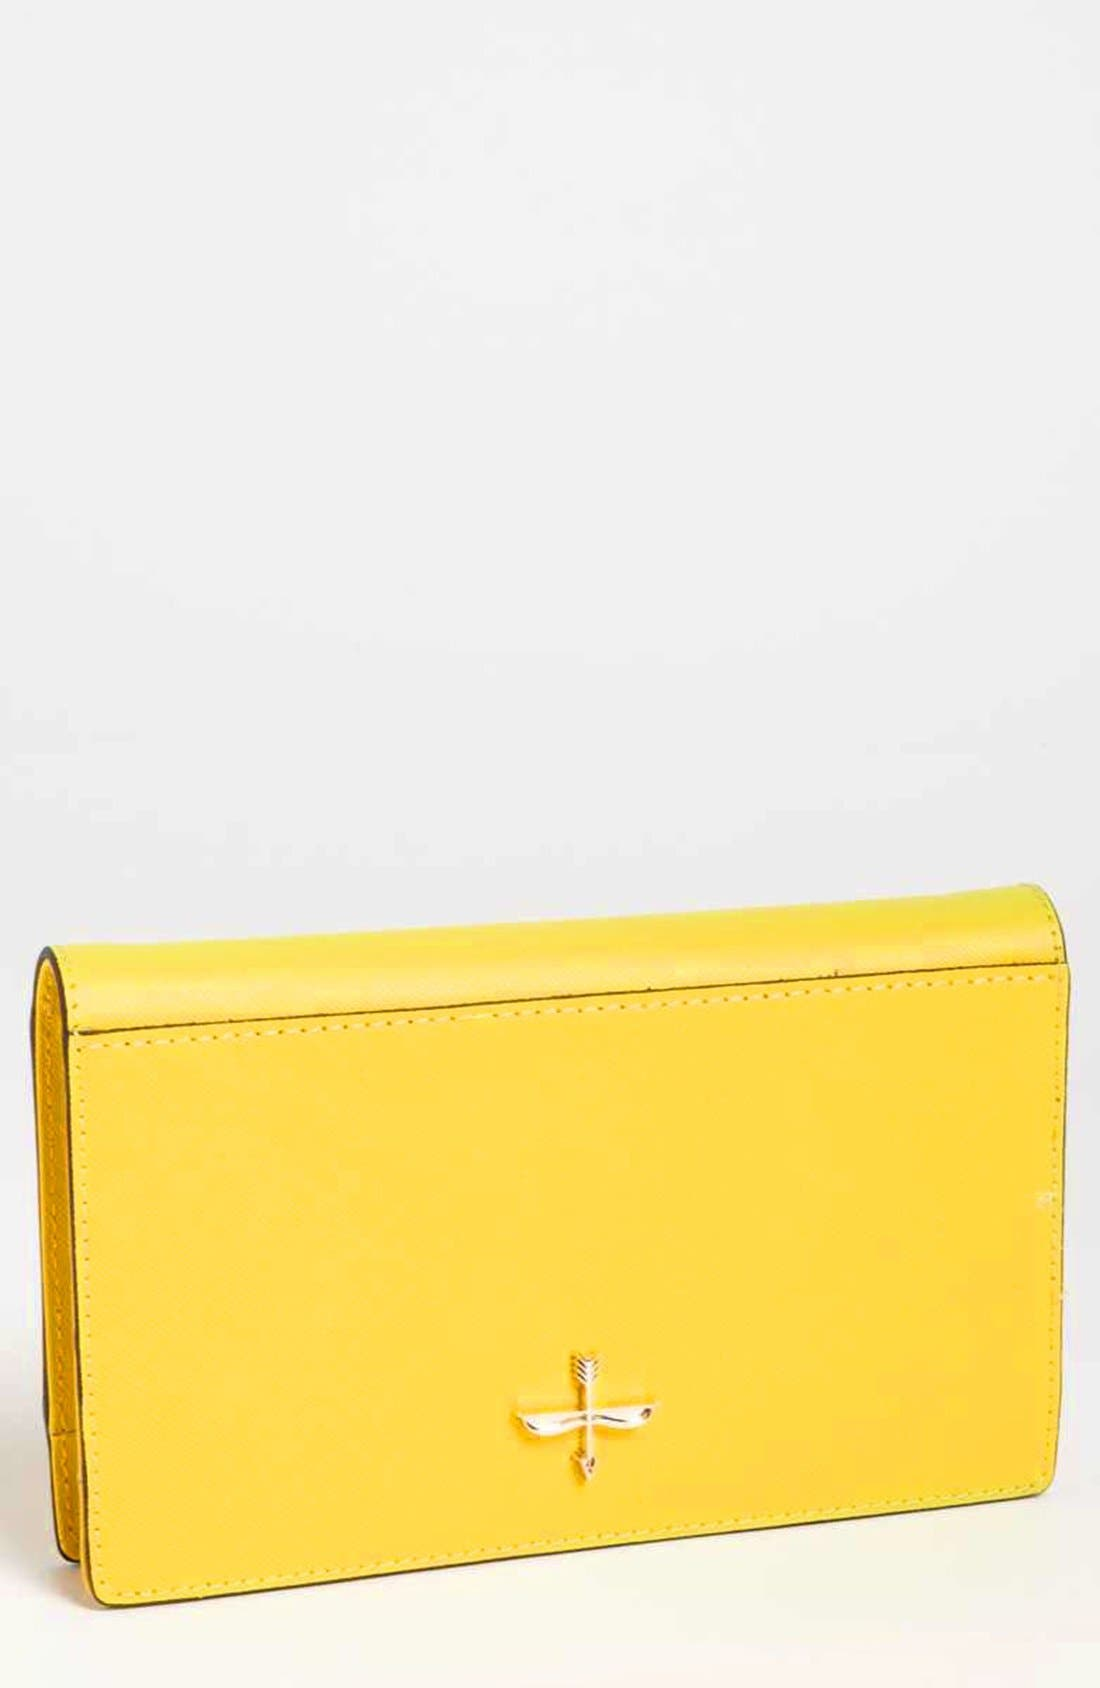 Alternate Image 1 Selected - Pour la Victoire 'Yves' Zip Around Wallet